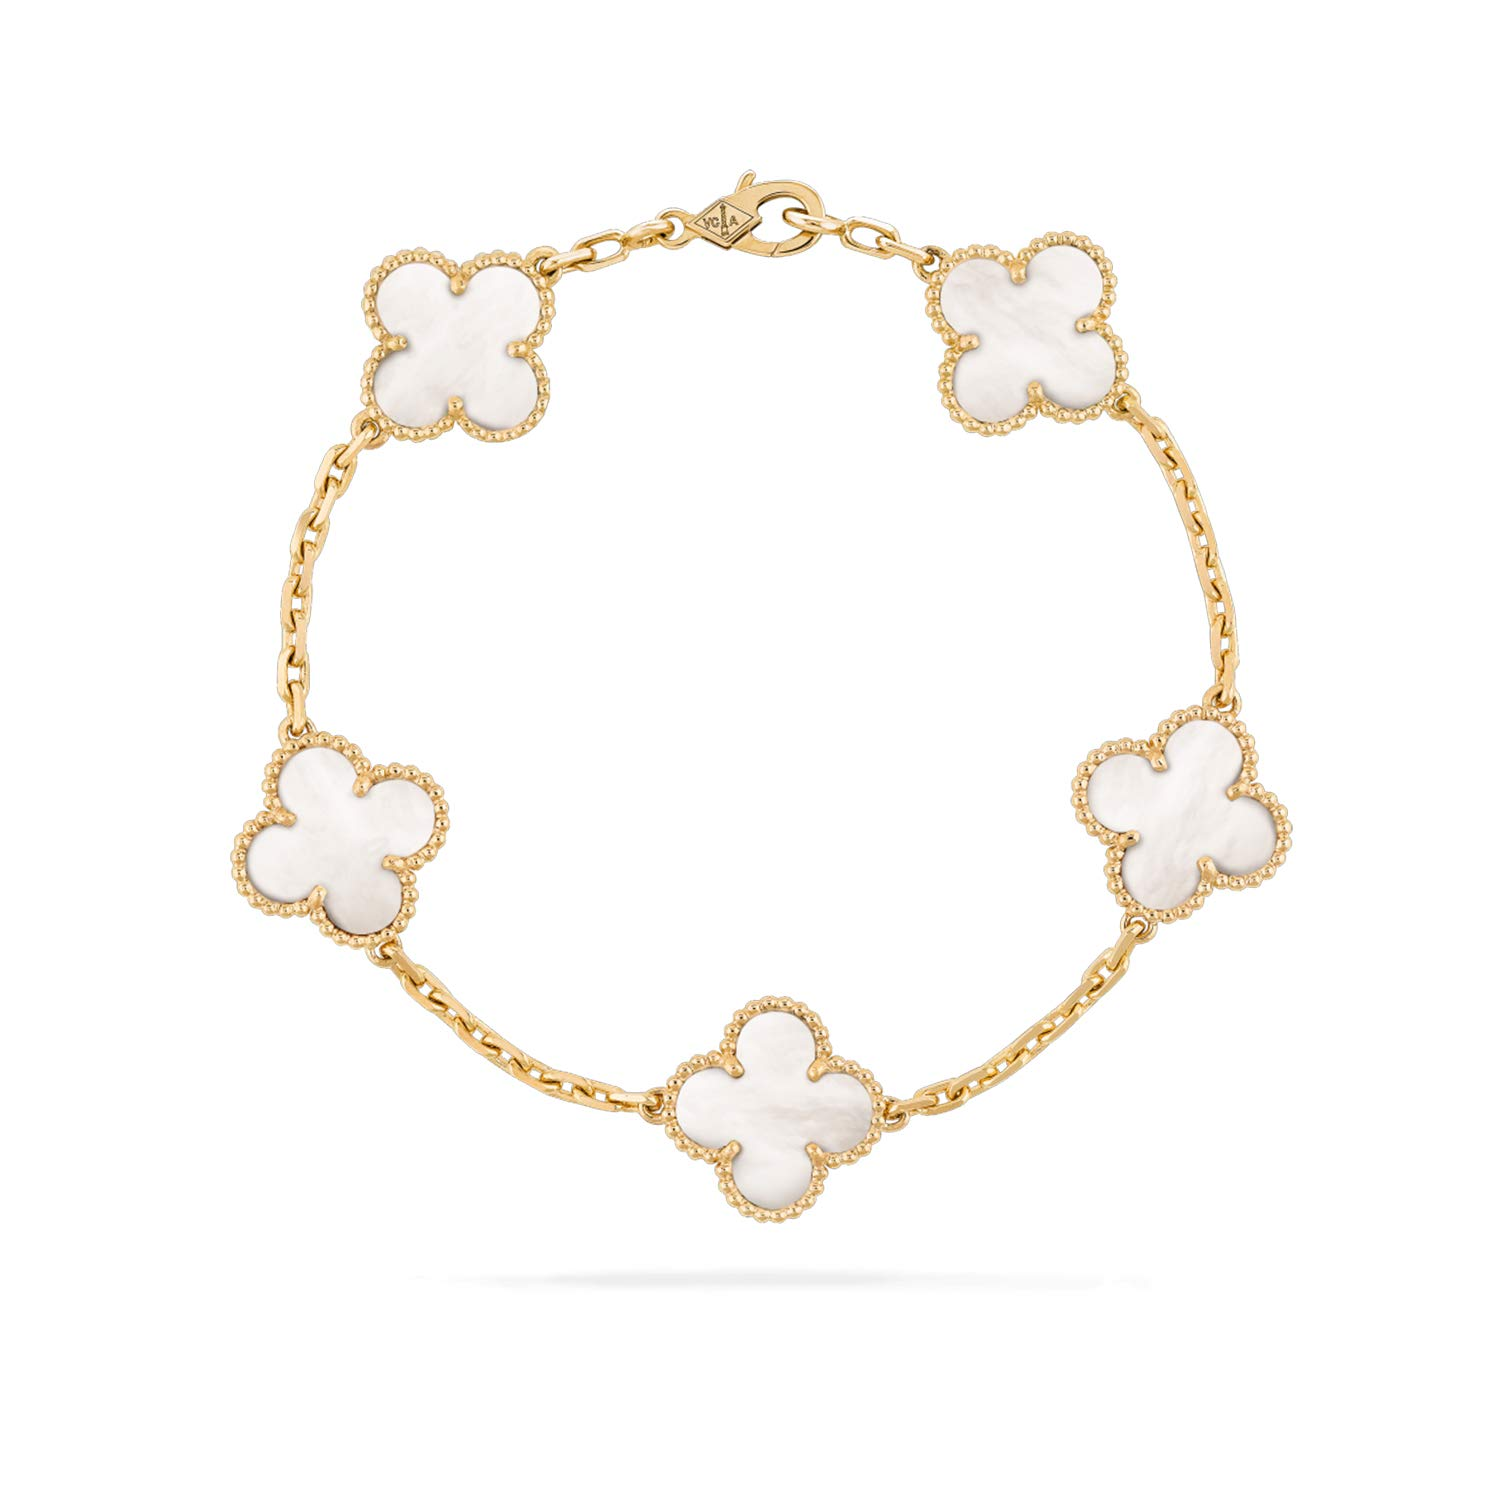 Van Cleef & Arpels Genuine Royal Jewelry Four Leaf Clover Bracelet Gift Packaging 2019 Vintage Alhambra Hand Chain Yellow Gold, Mother-of-Pearl